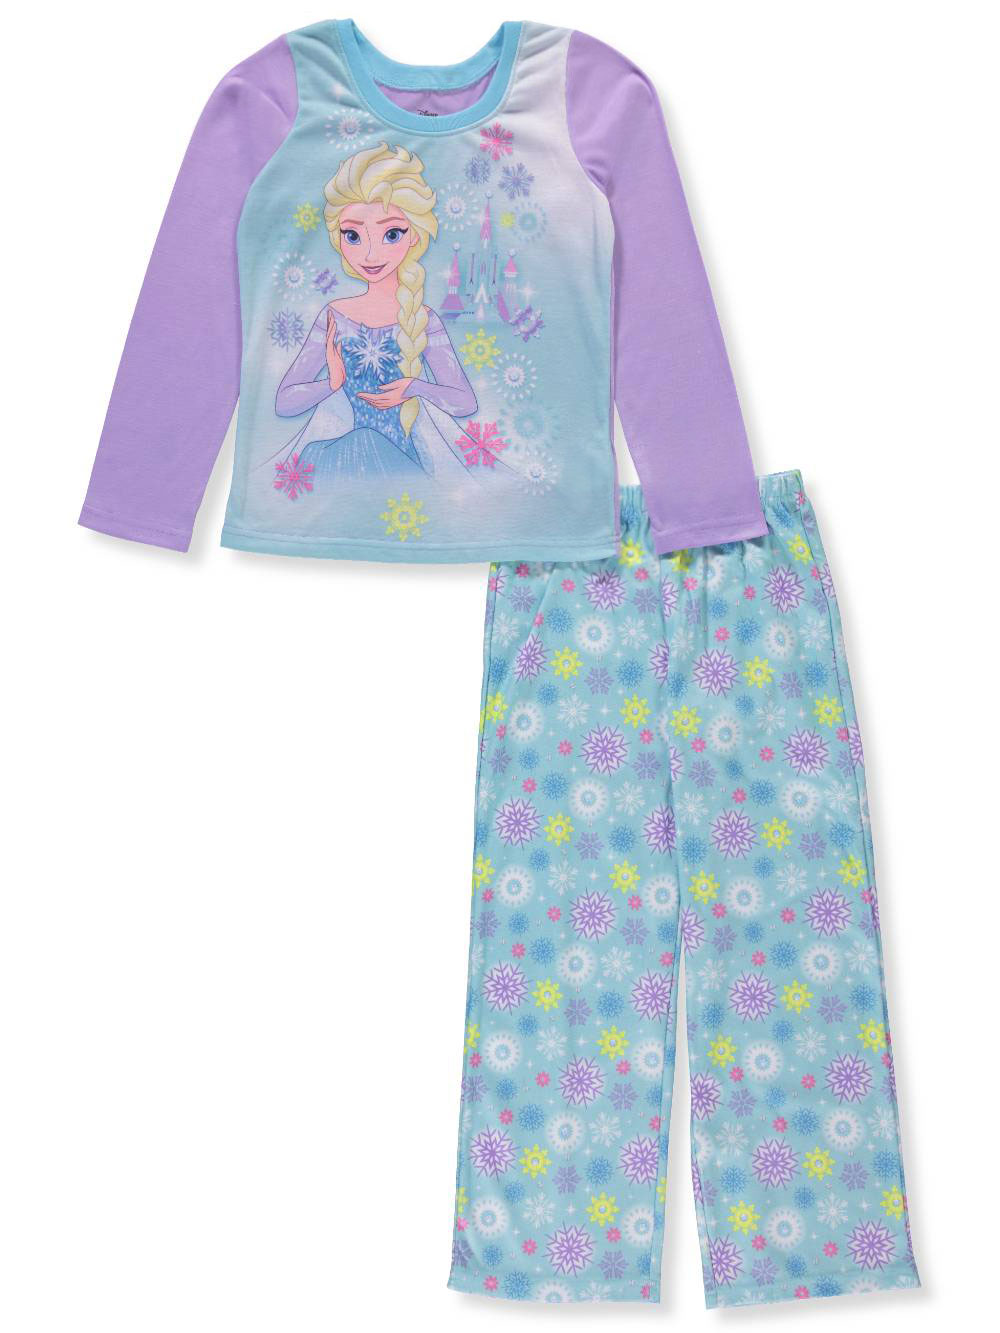 Disney Frozen Girls' 2-Piece Pajamas Featuring Elsa